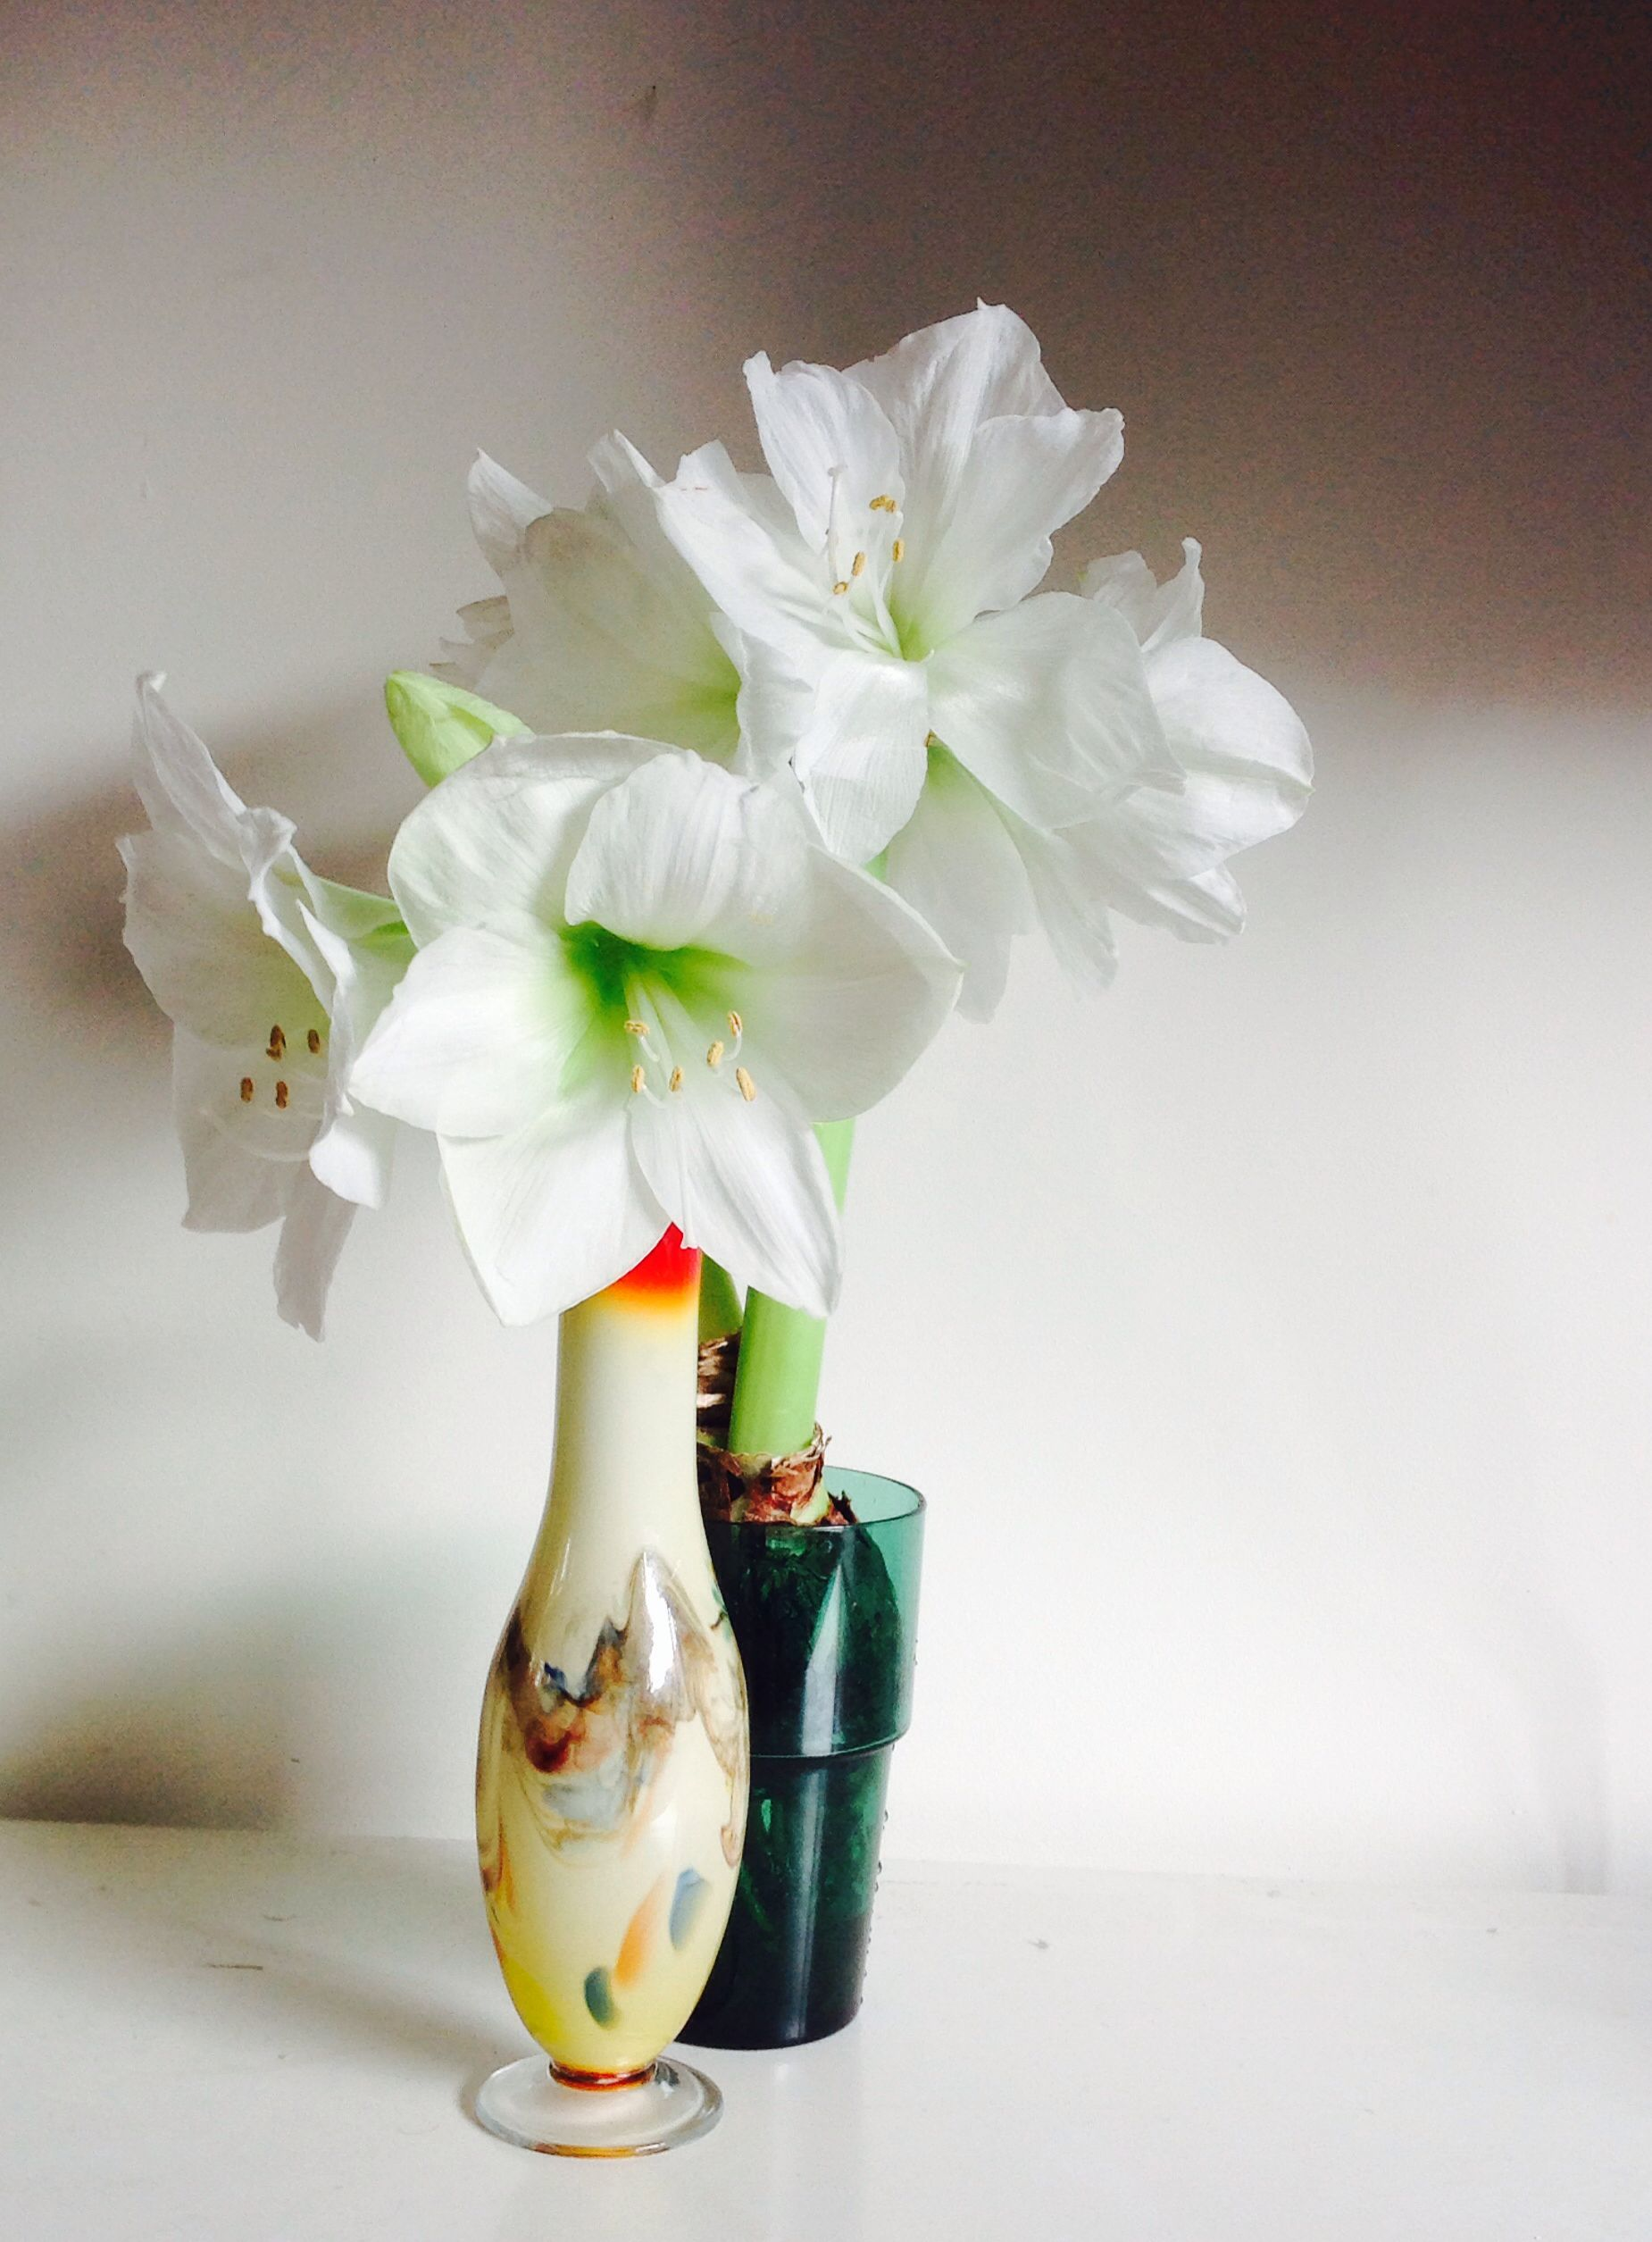 Amaryllis Bulb Fits In Ikea Glass Behind The Vase With One Flower That Broke Off